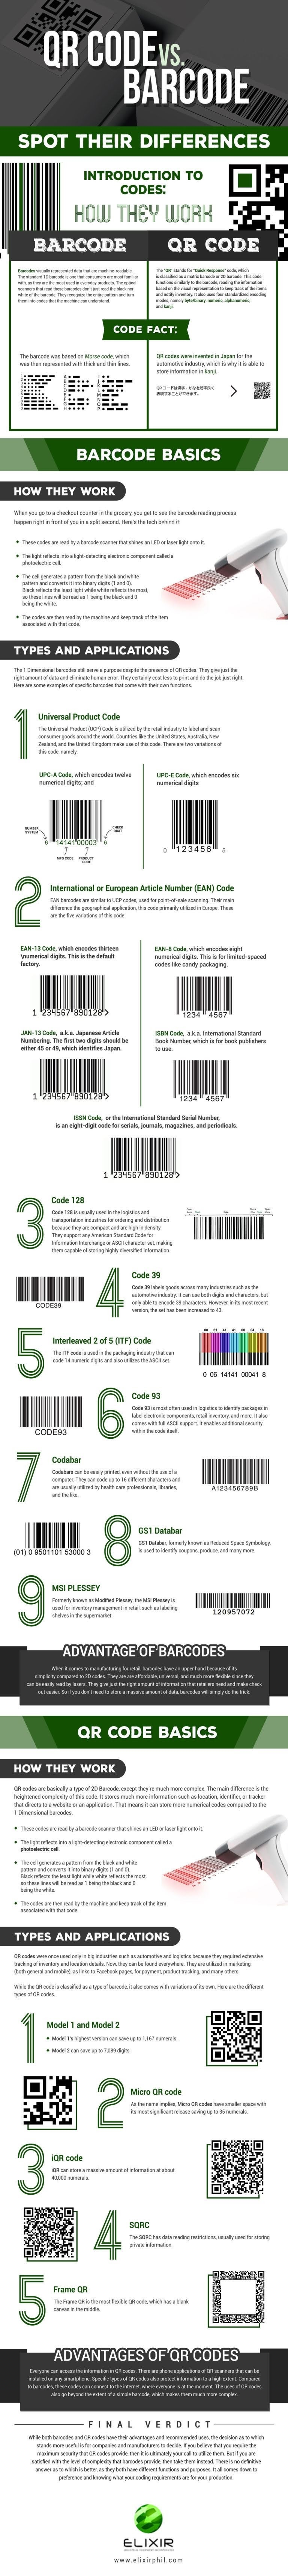 QR Code vs. Barcode: Spot Their Differences #infographic